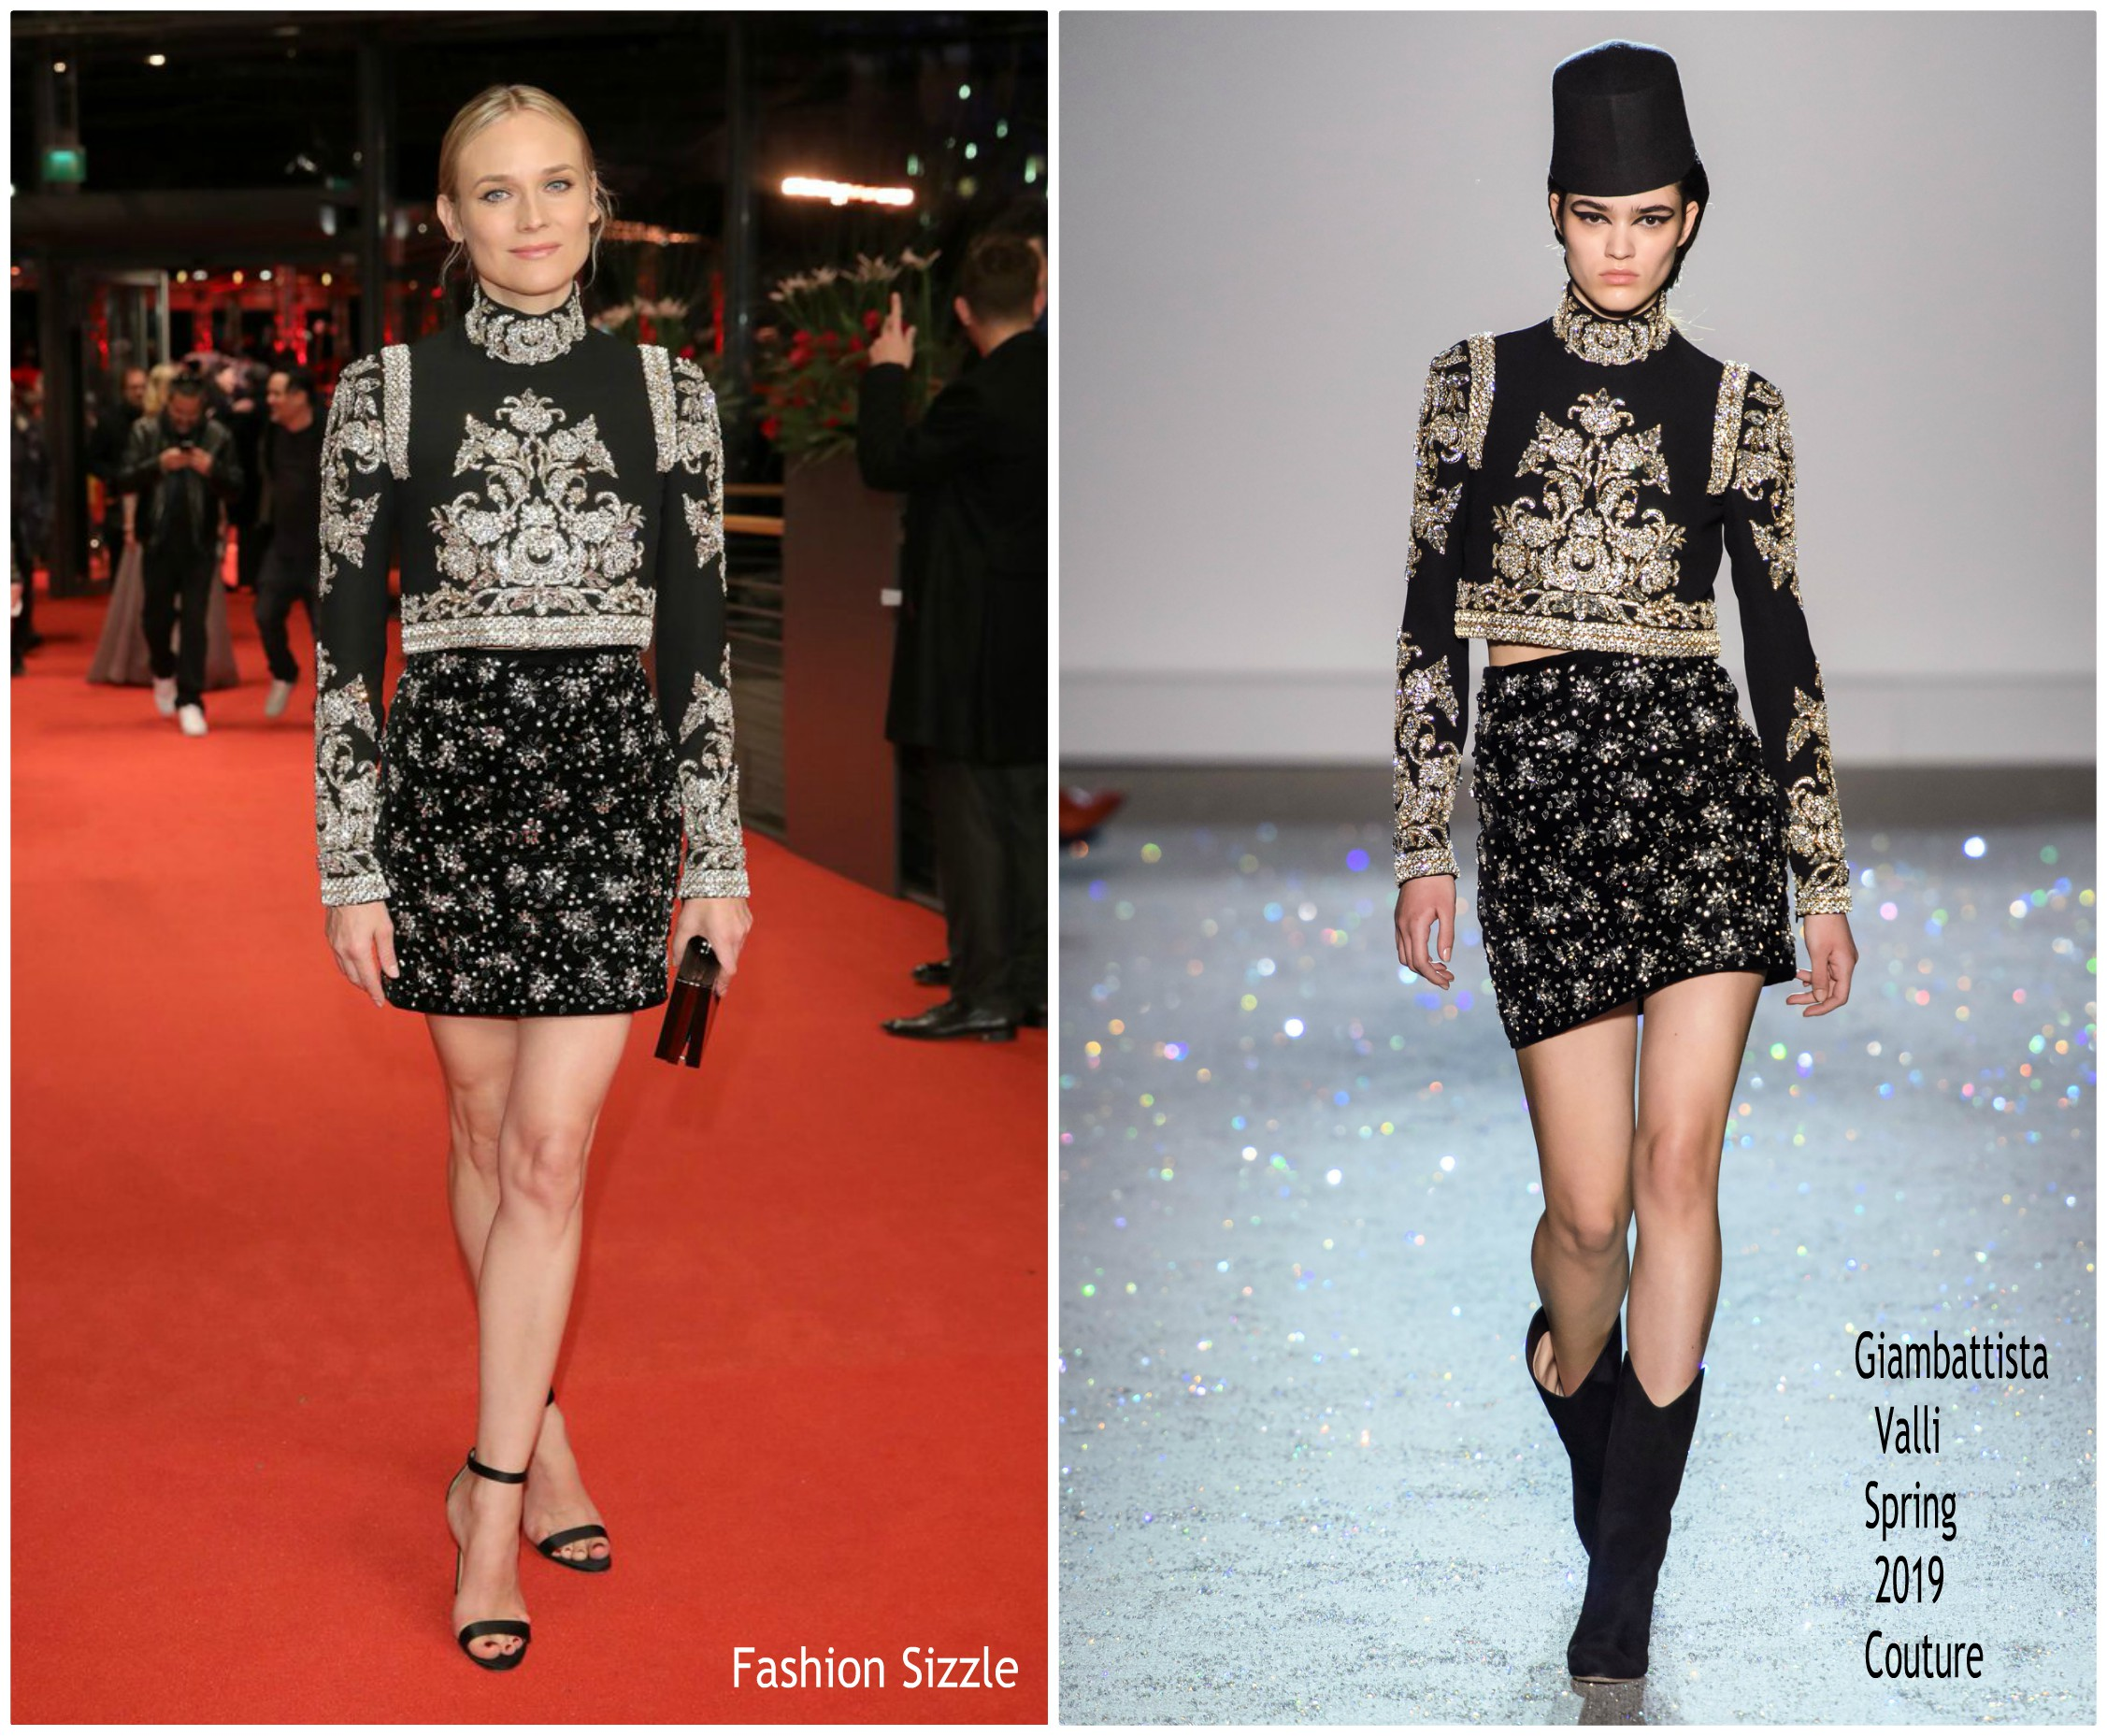 diane-kruger-in-giambattista-valli-haut-couture-the-golden-glove-berlinale-international-film-festival-premiere